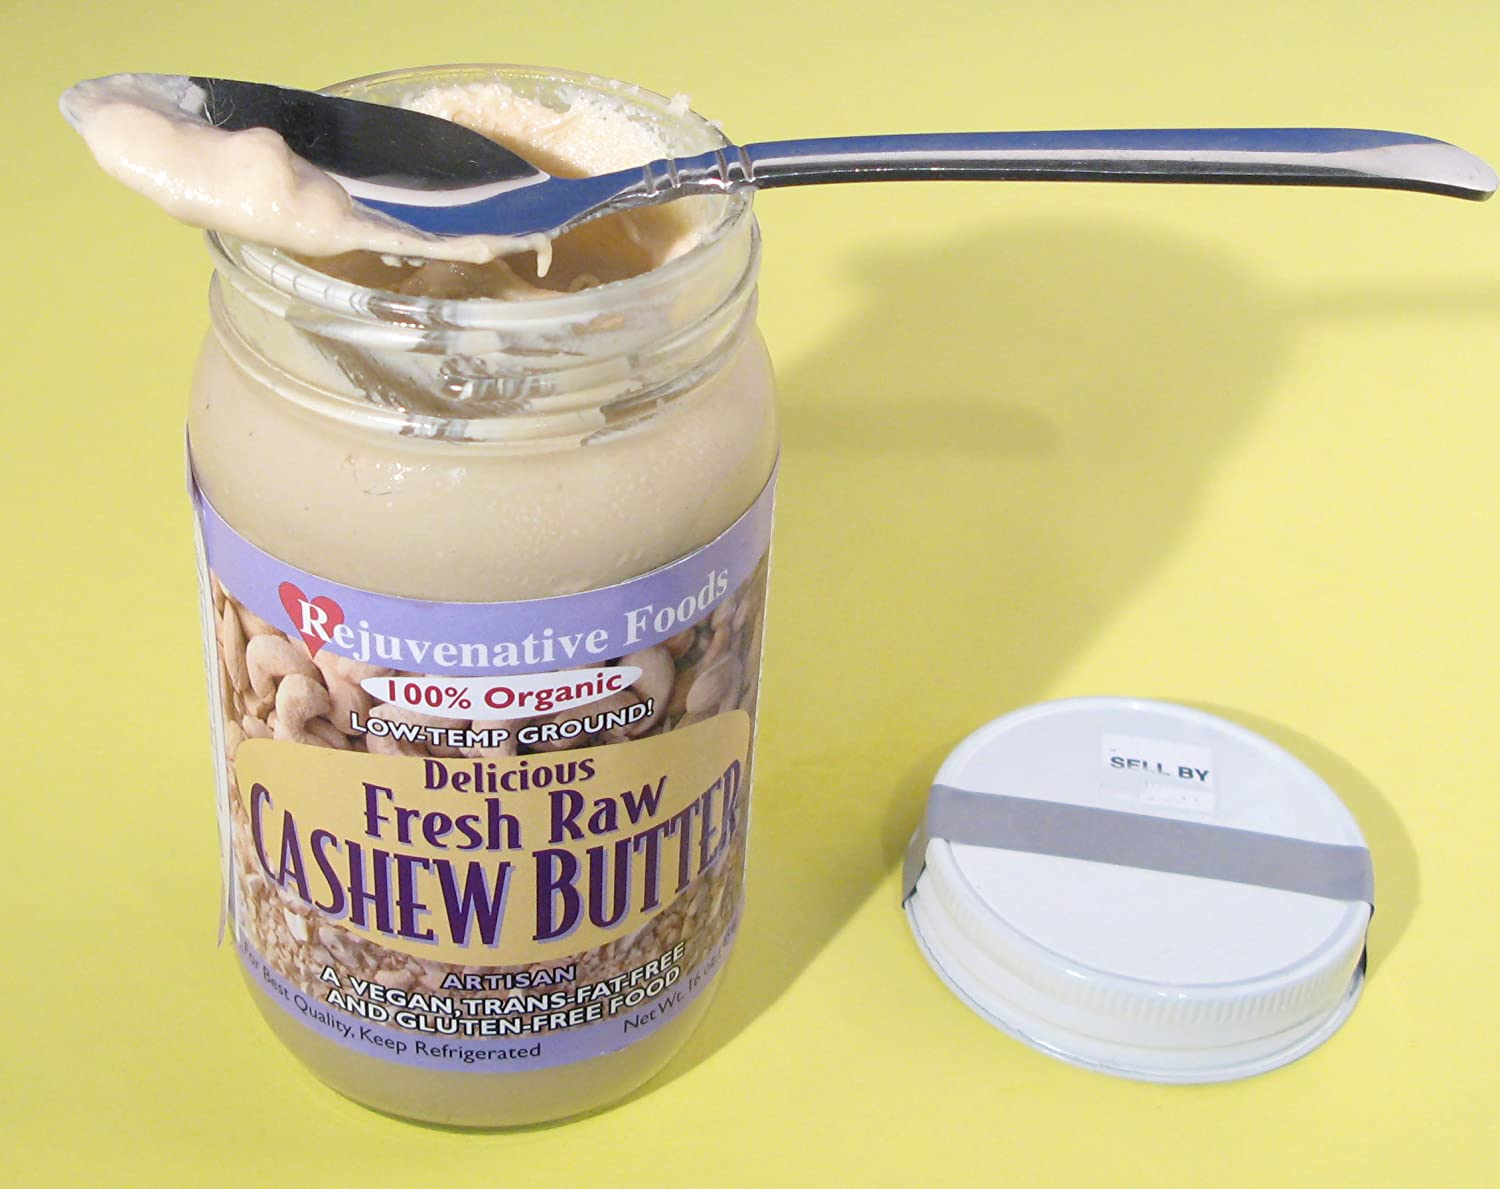 Amazon.com : Fresh-Pure-Raw Smooth Creamy Cashew Butter Rejuvenative Foods Organic Certified Low-Temp-Ground Artisan-Ayurvedic-Vegan In-Glass ...